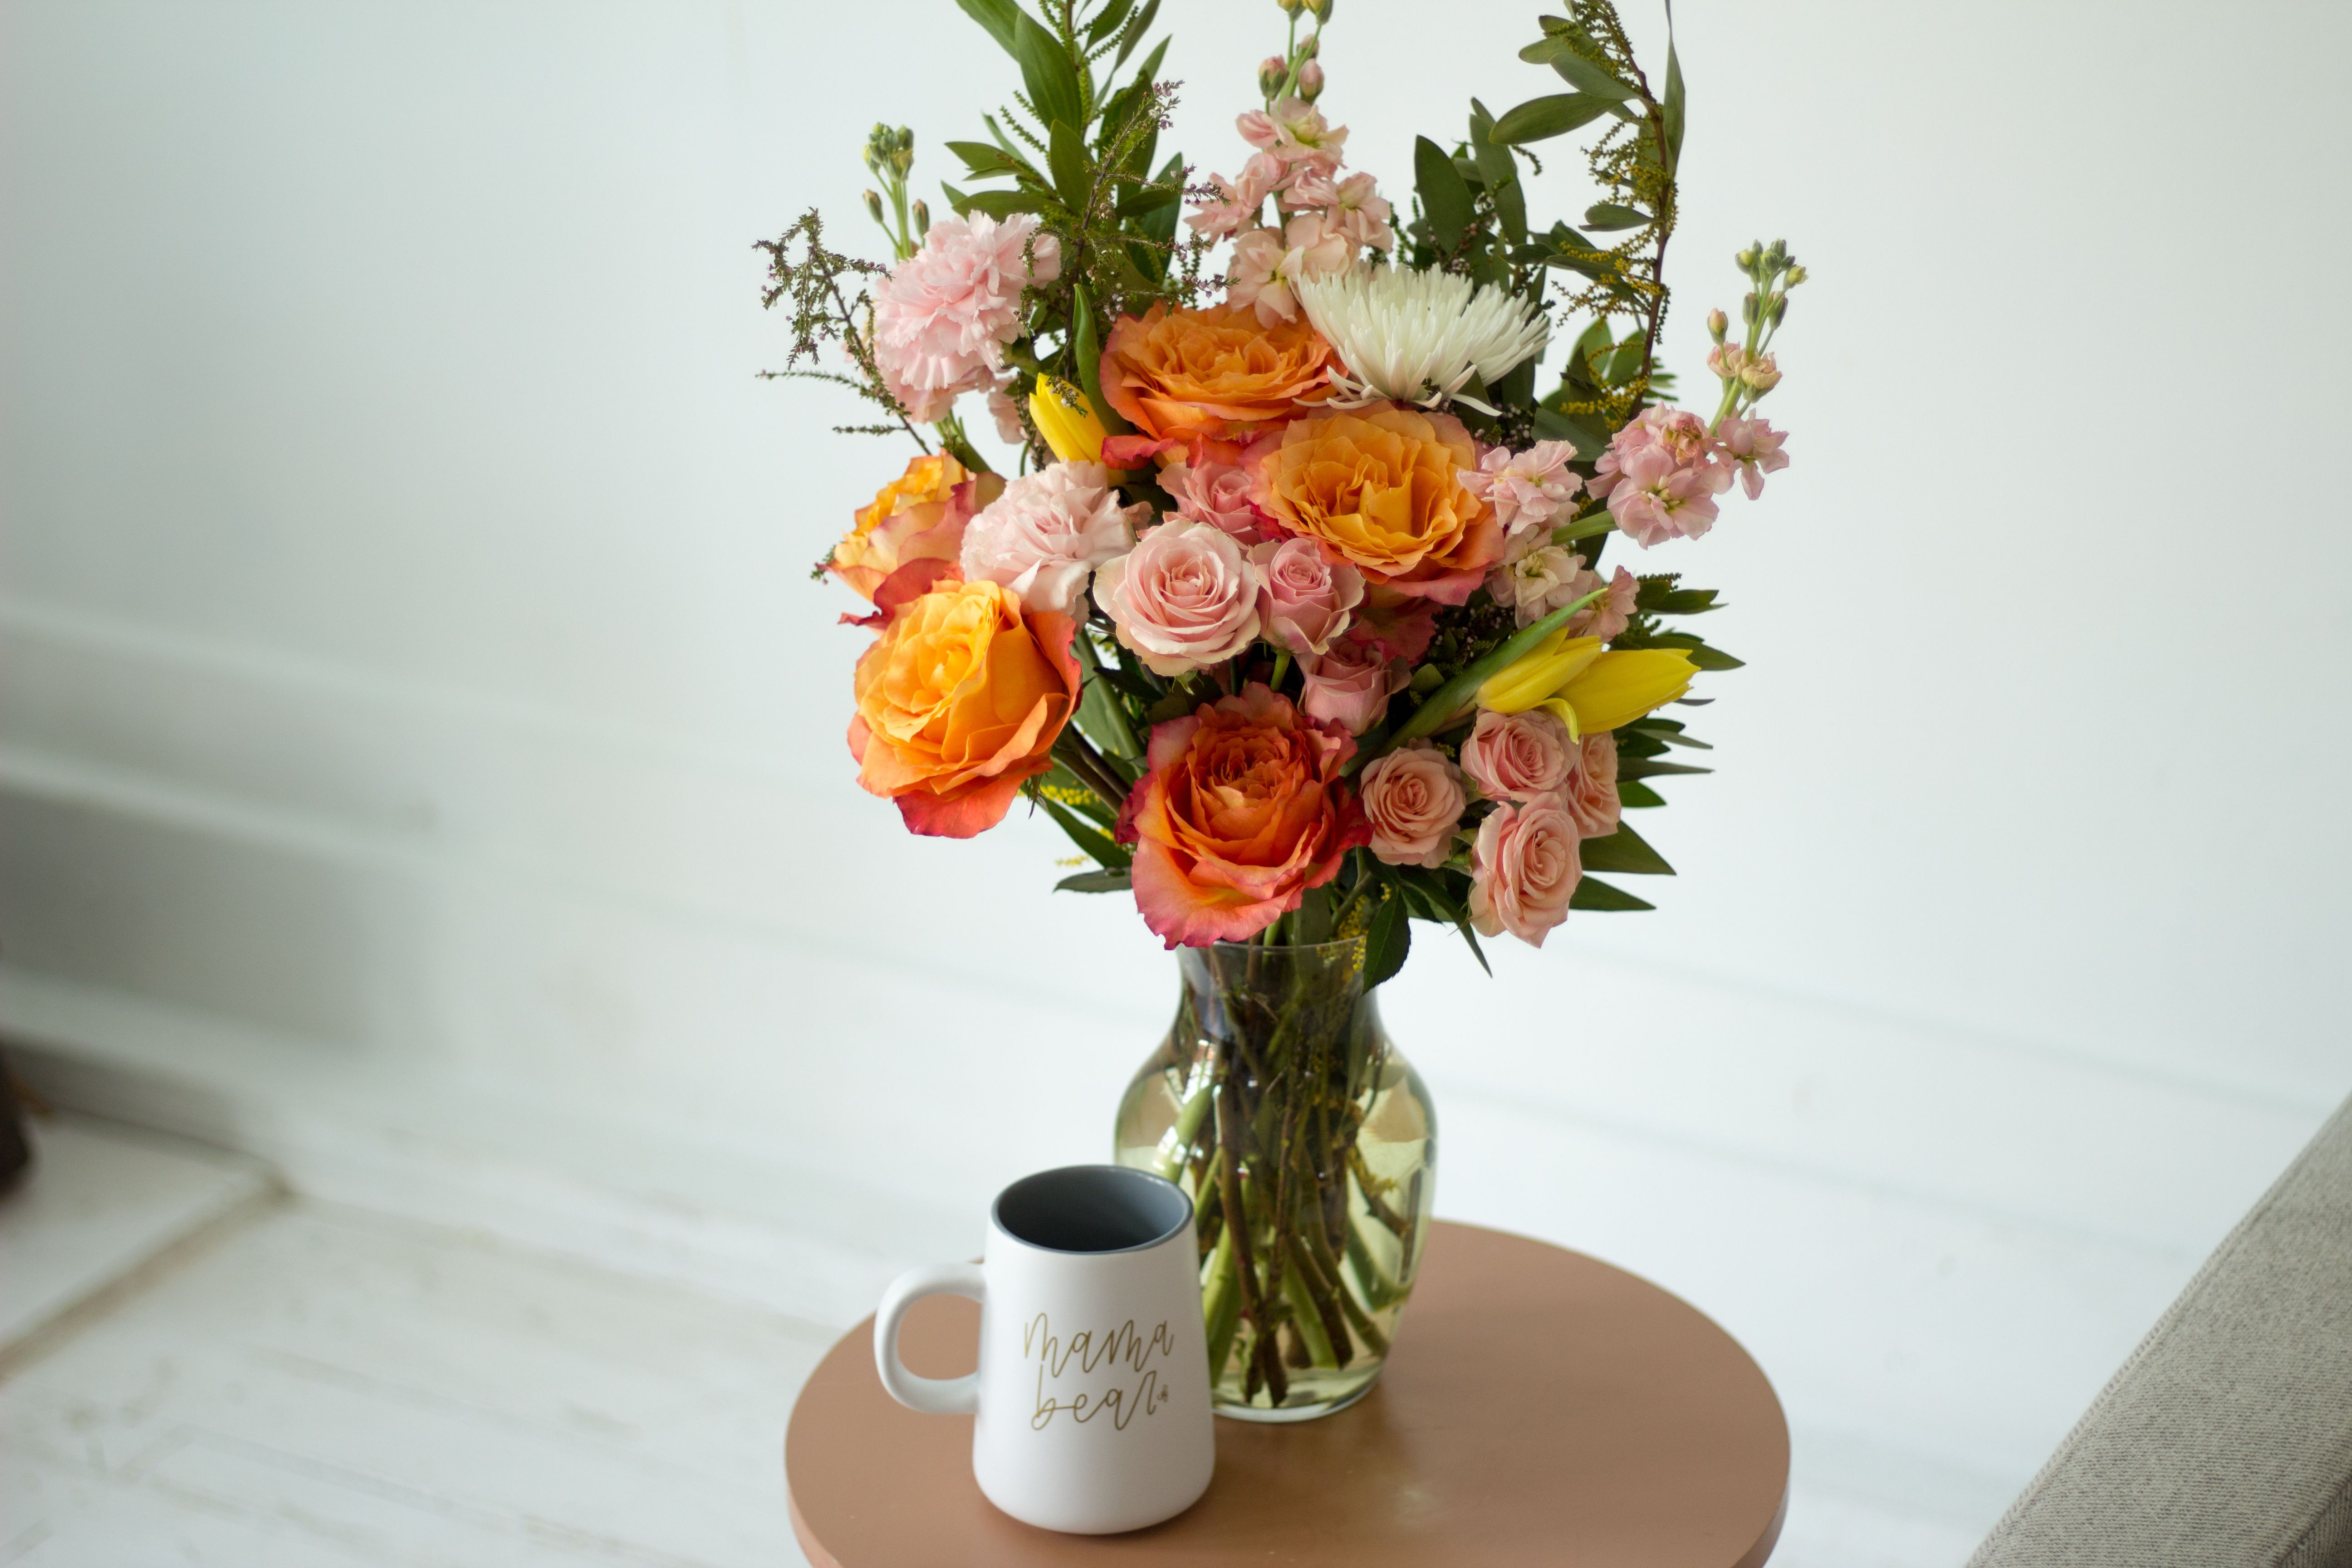 Kansas City Gifts Support Small Business With Locally Sourced Gifts City Gifts Mother S Day Mugs Curated Gifts